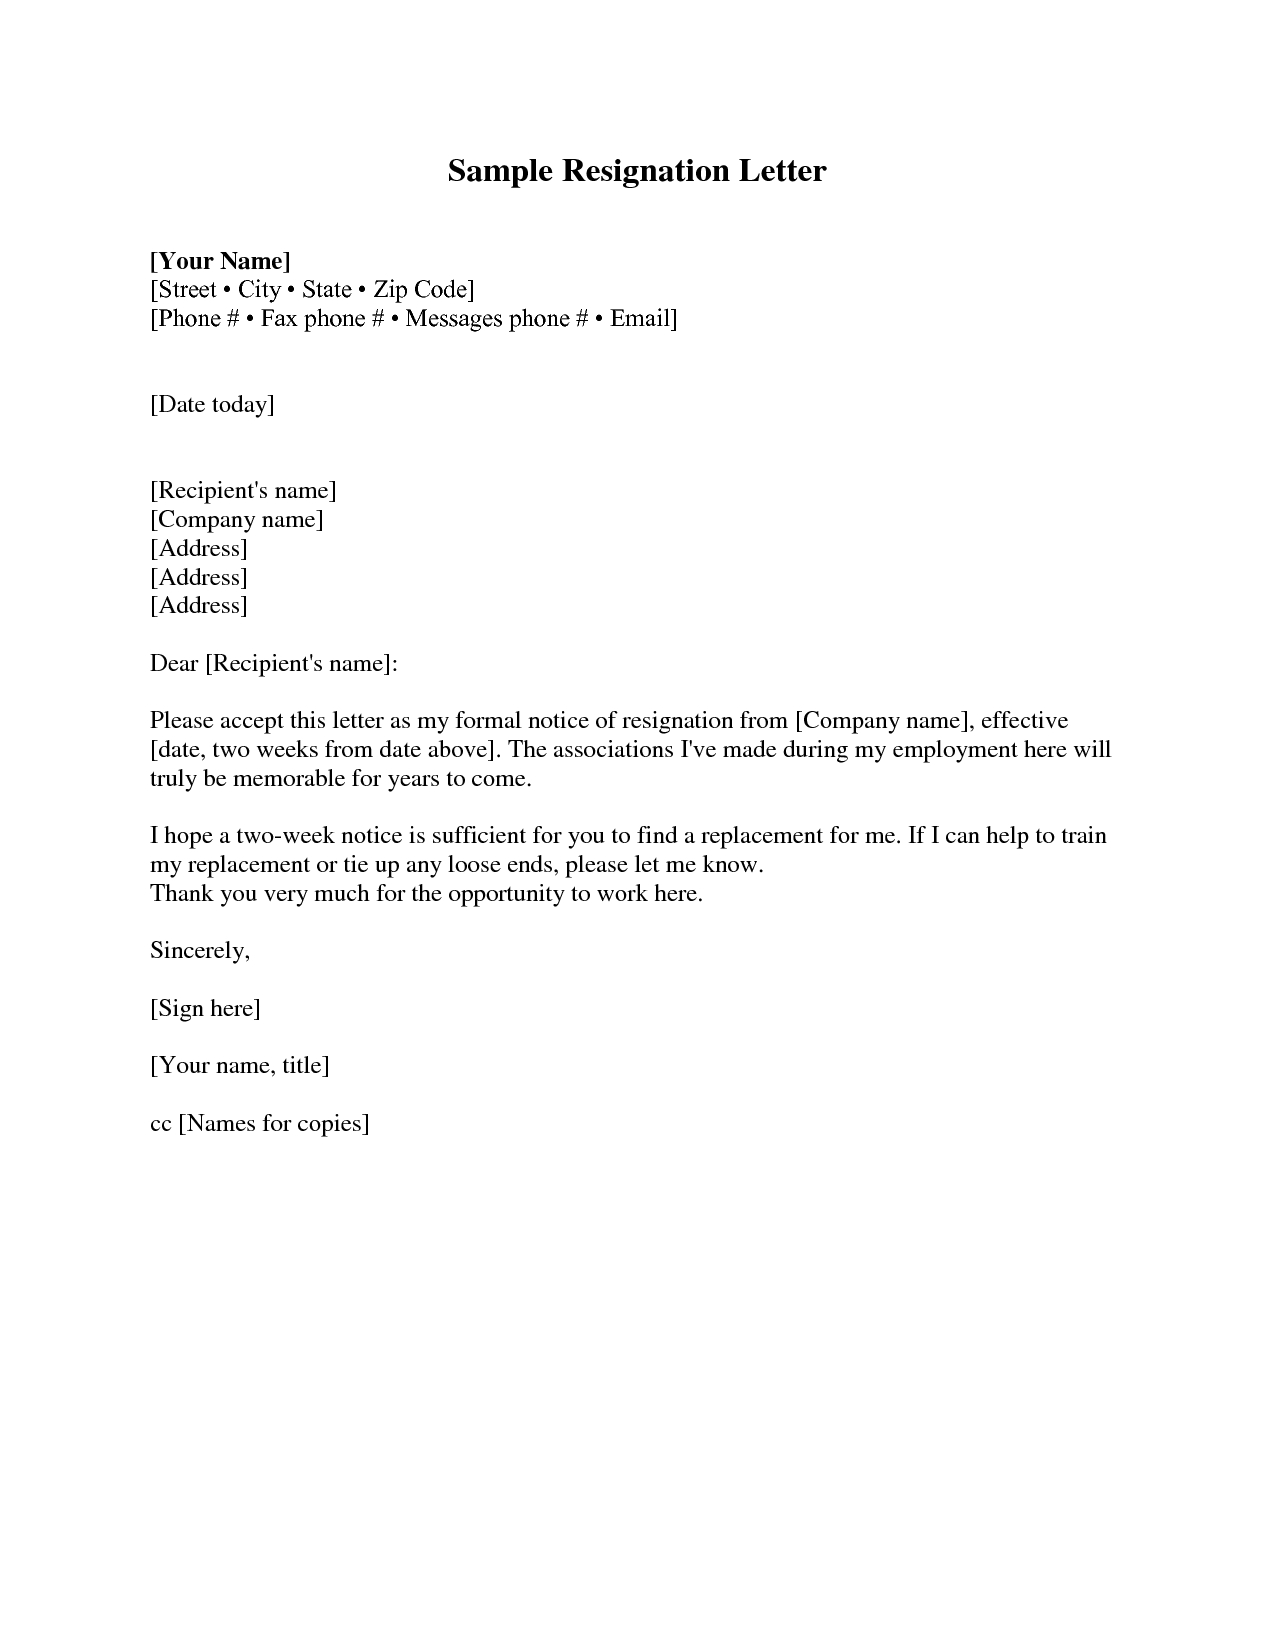 free resignation letter template word example-resignation letter sample 2 weeks notice 16-f